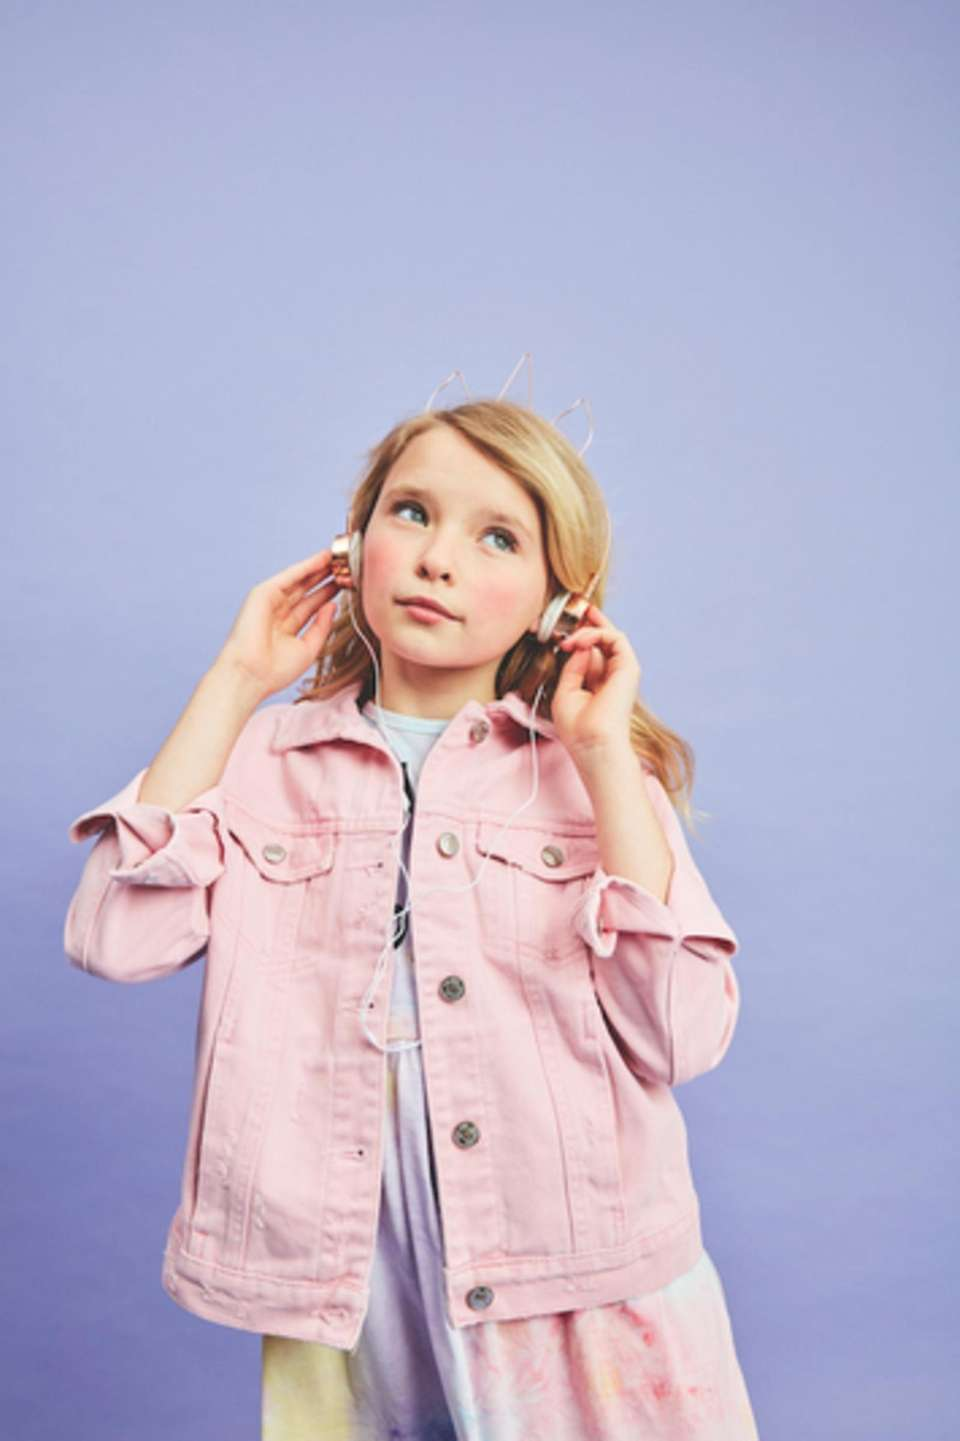 These trendy headphones feature unicorn ears and a